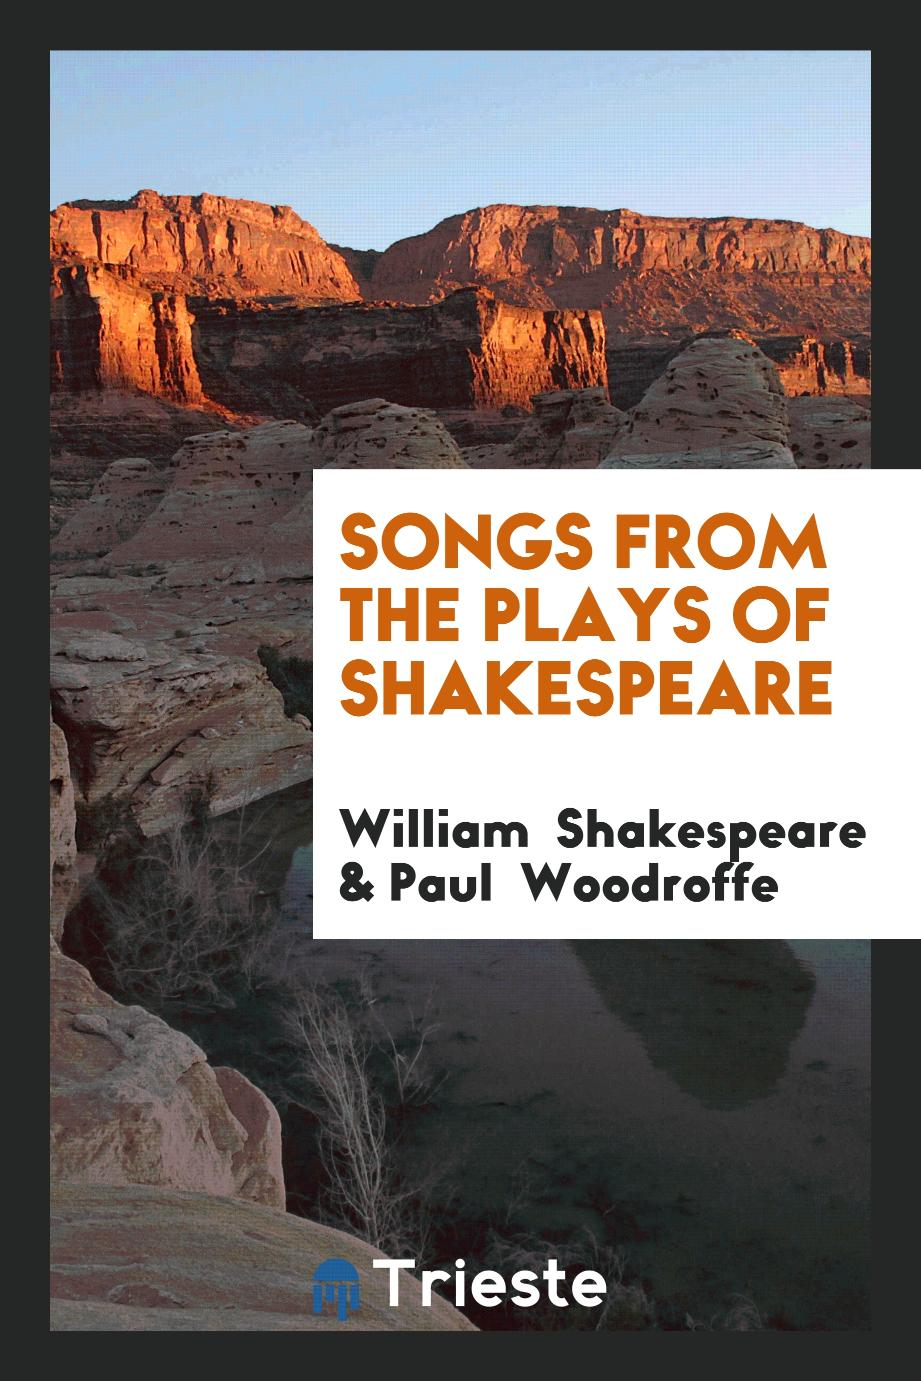 Songs from the Plays of Shakespeare